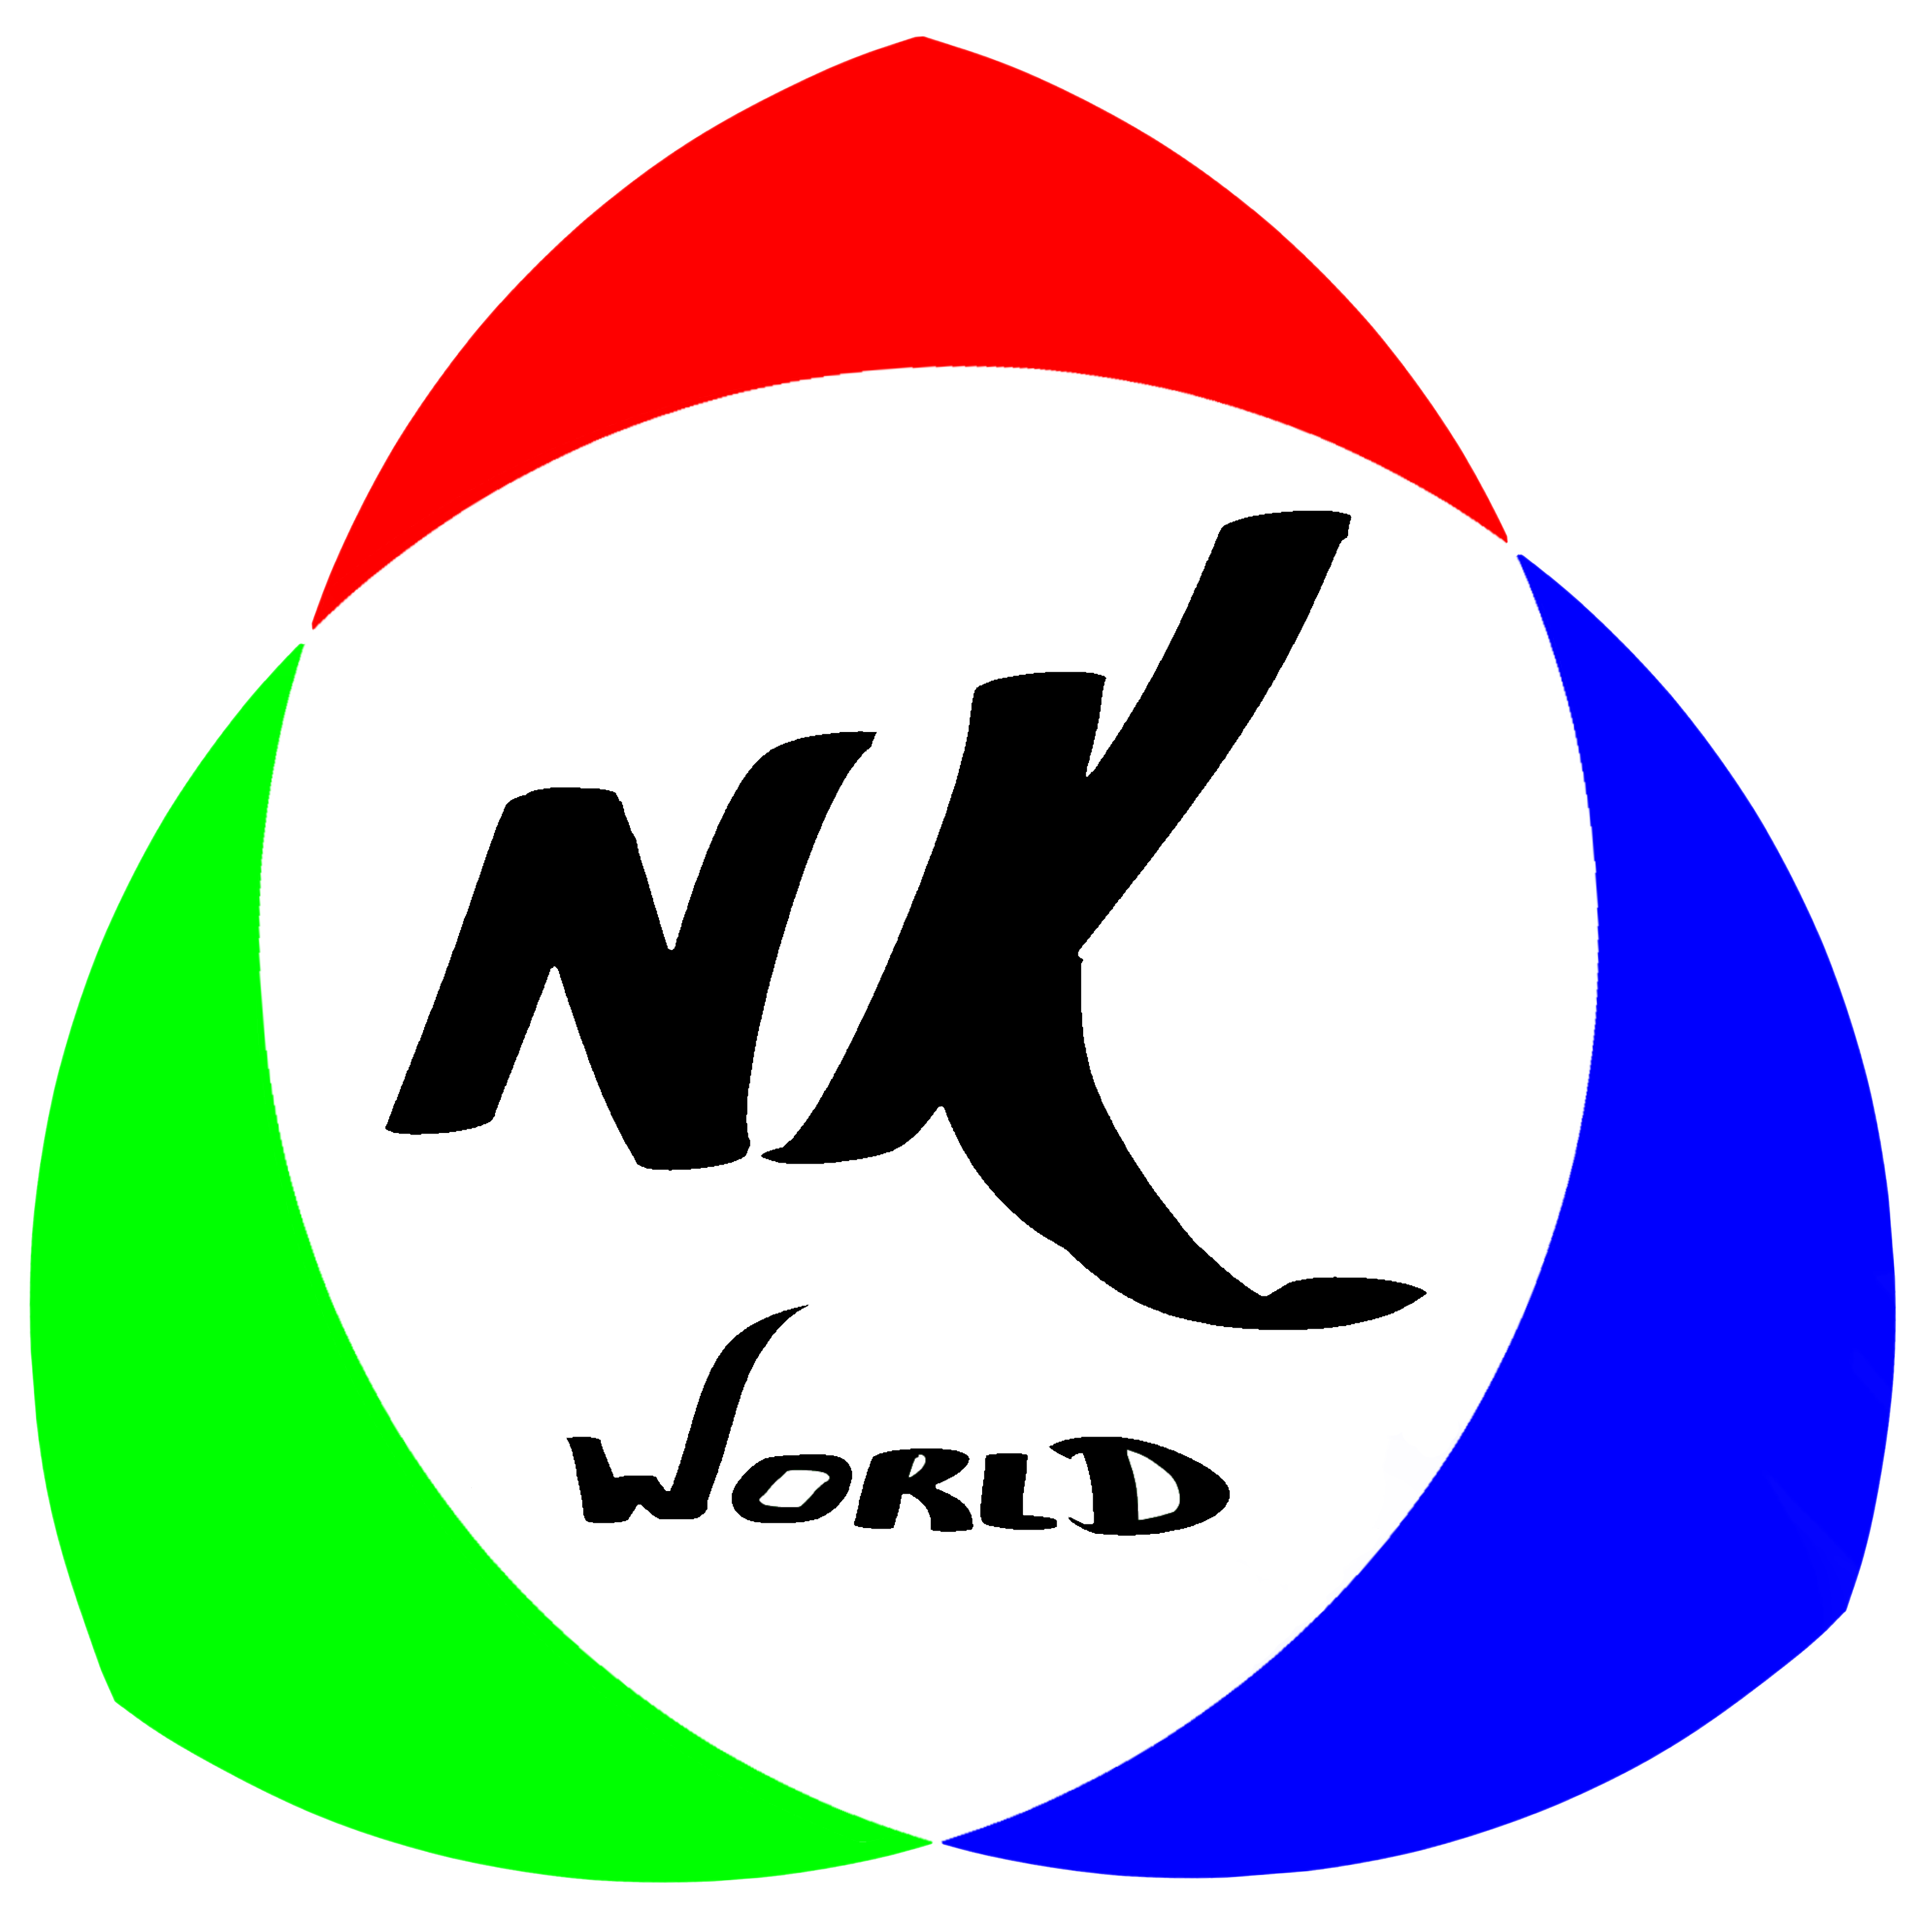 NK World